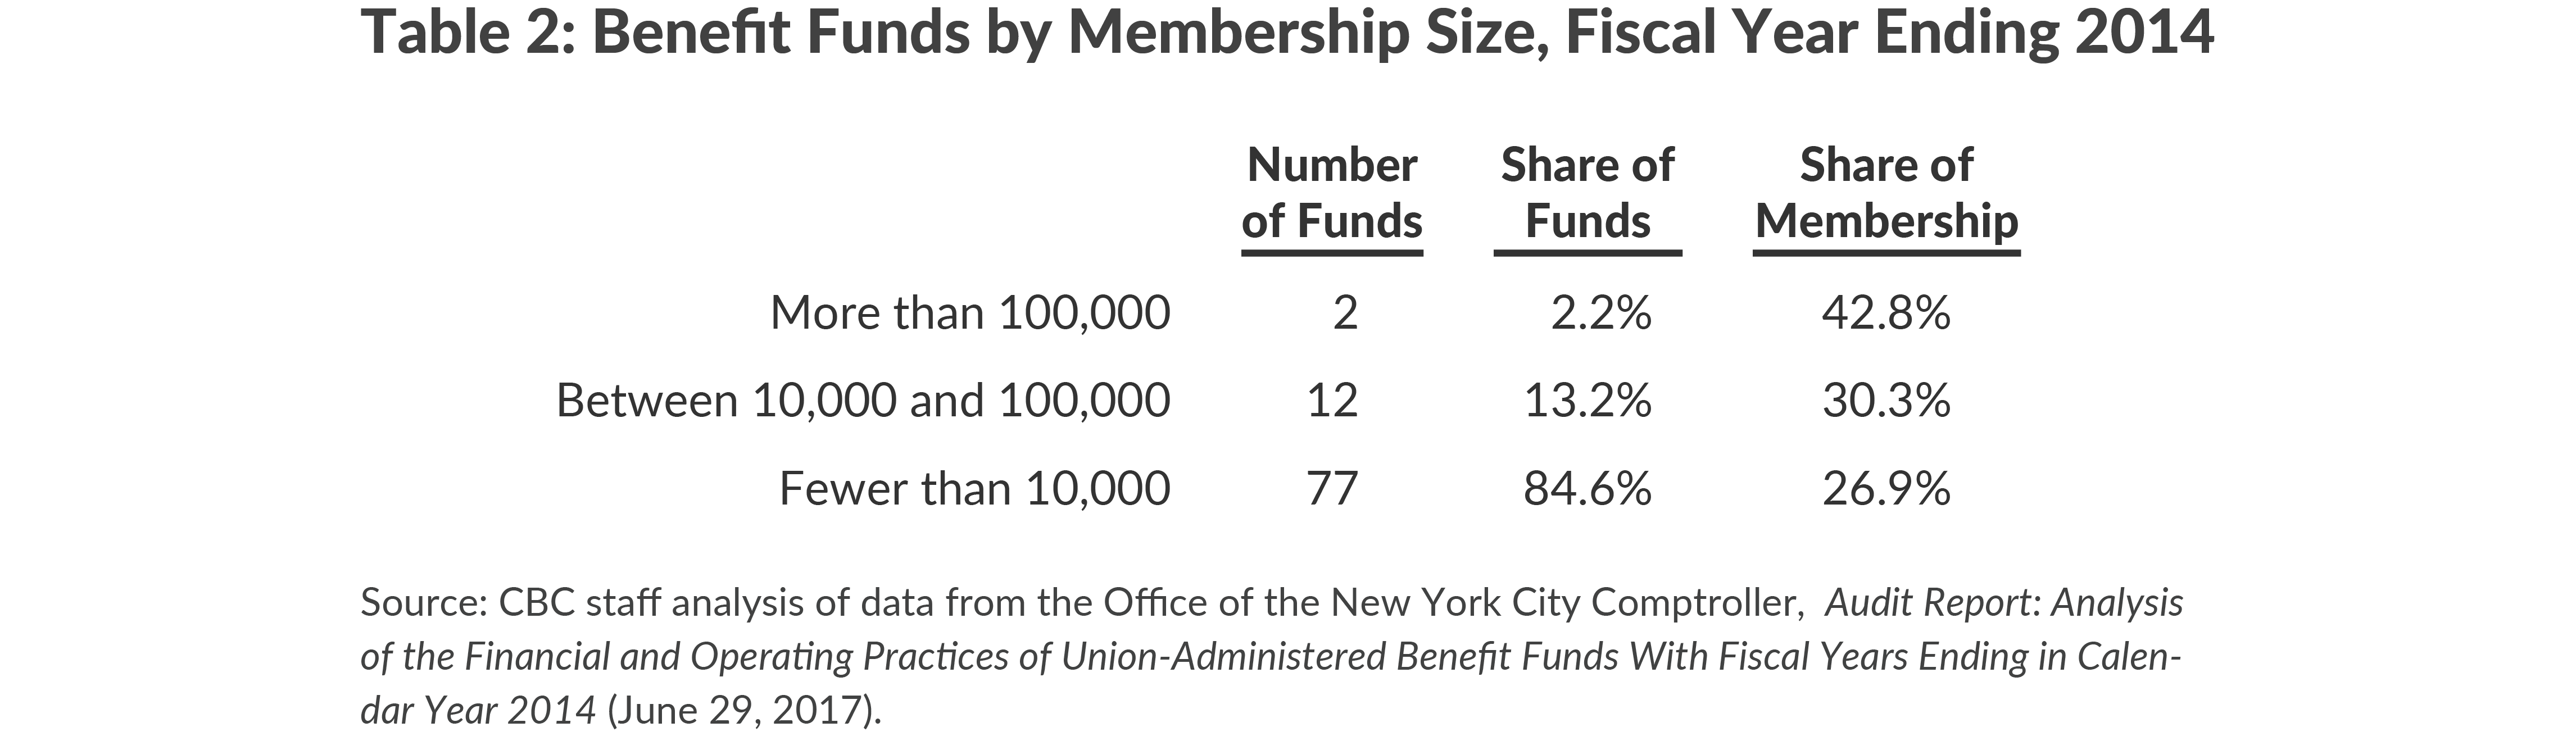 Table 2: Benefit Funds by Membership Size, Fiscal Year Ending 2014